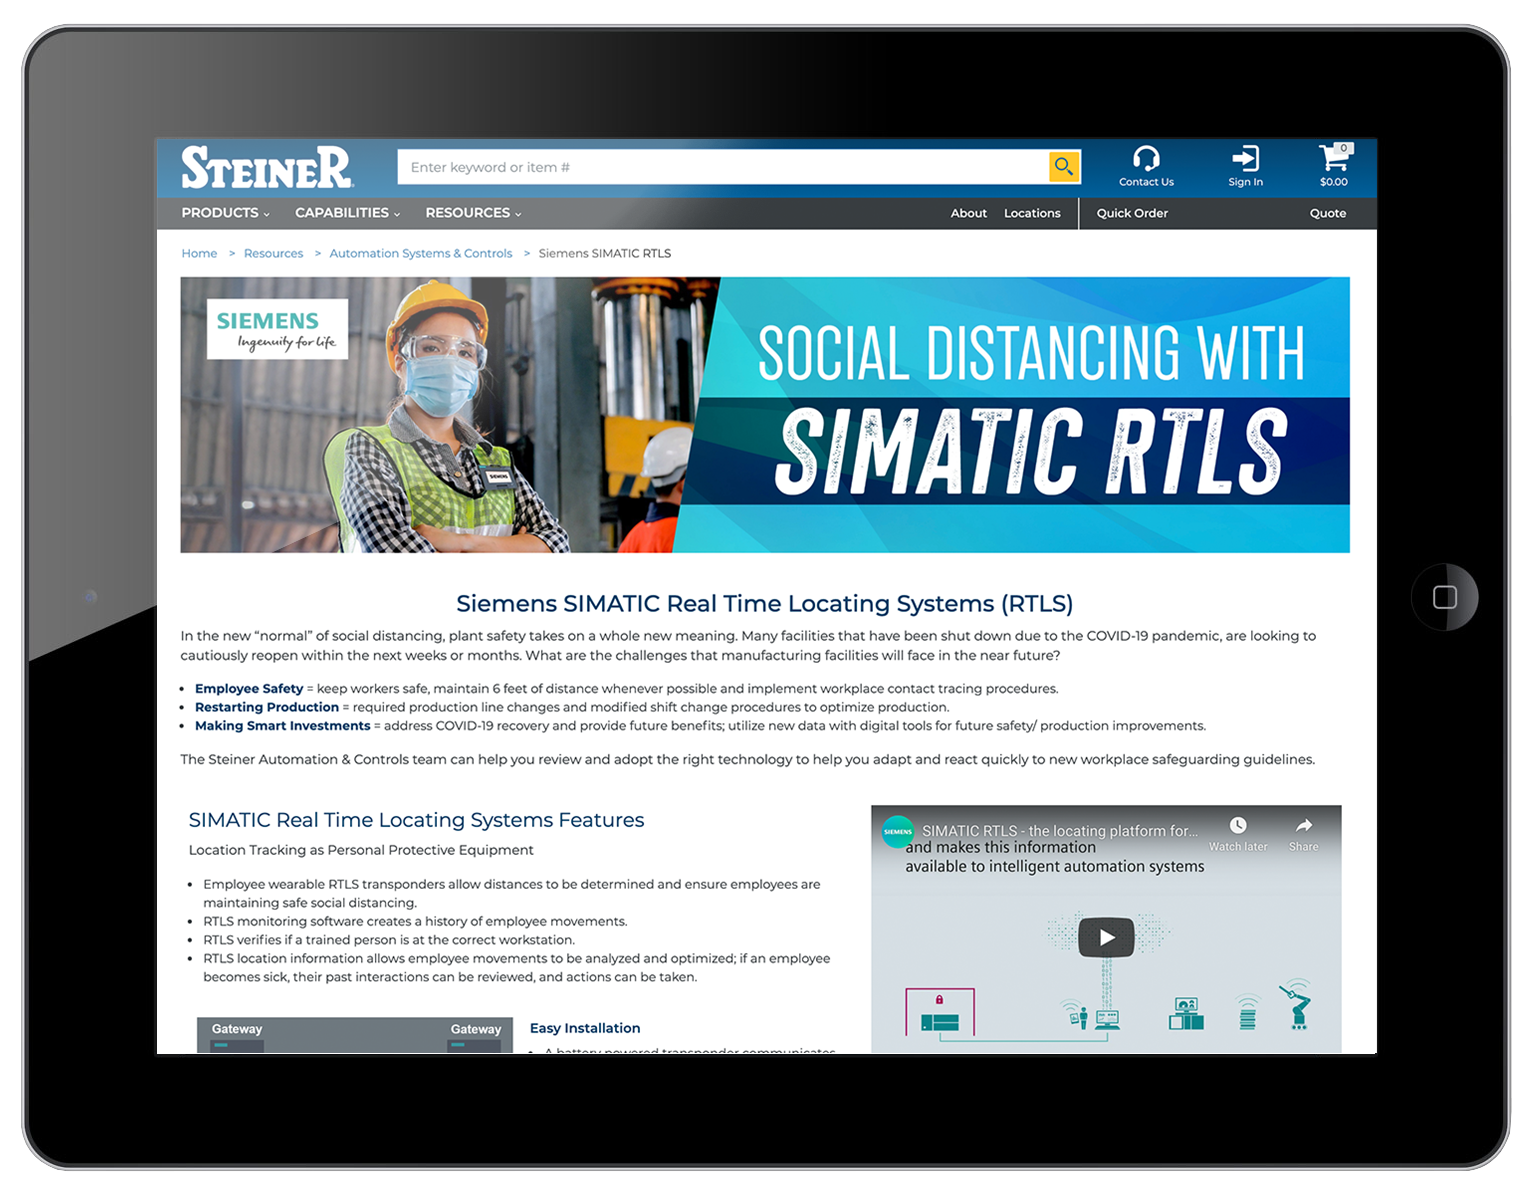 Siemens Simatic Real Time Locating Systems